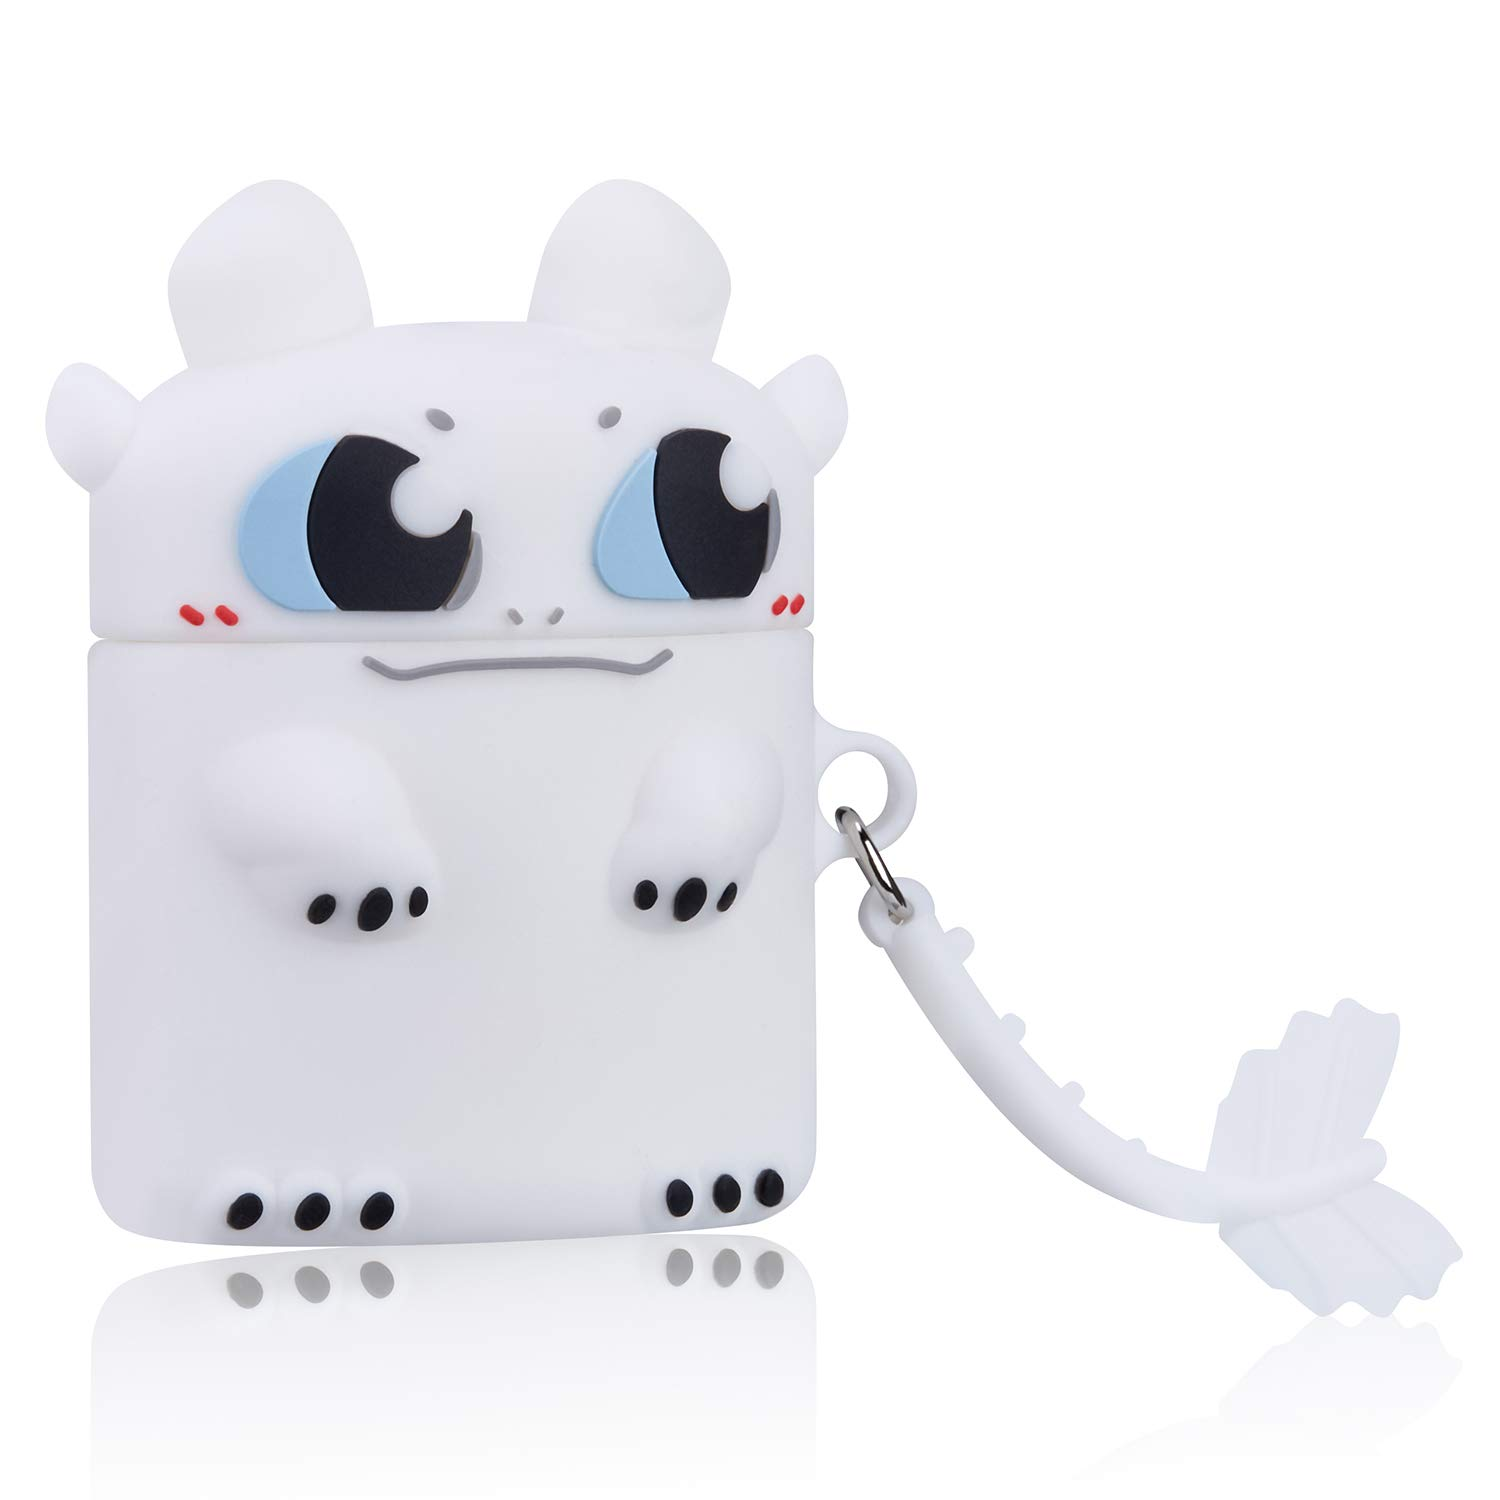 Gift-Hero White Toothless Cartoon Case for Airpods, Cute Funny Animal Pattern Design for Girls Boys Kids, Accessories Carabiner Protective Fun Fashion Character Skin Silicone Cover for Air pods 2/1